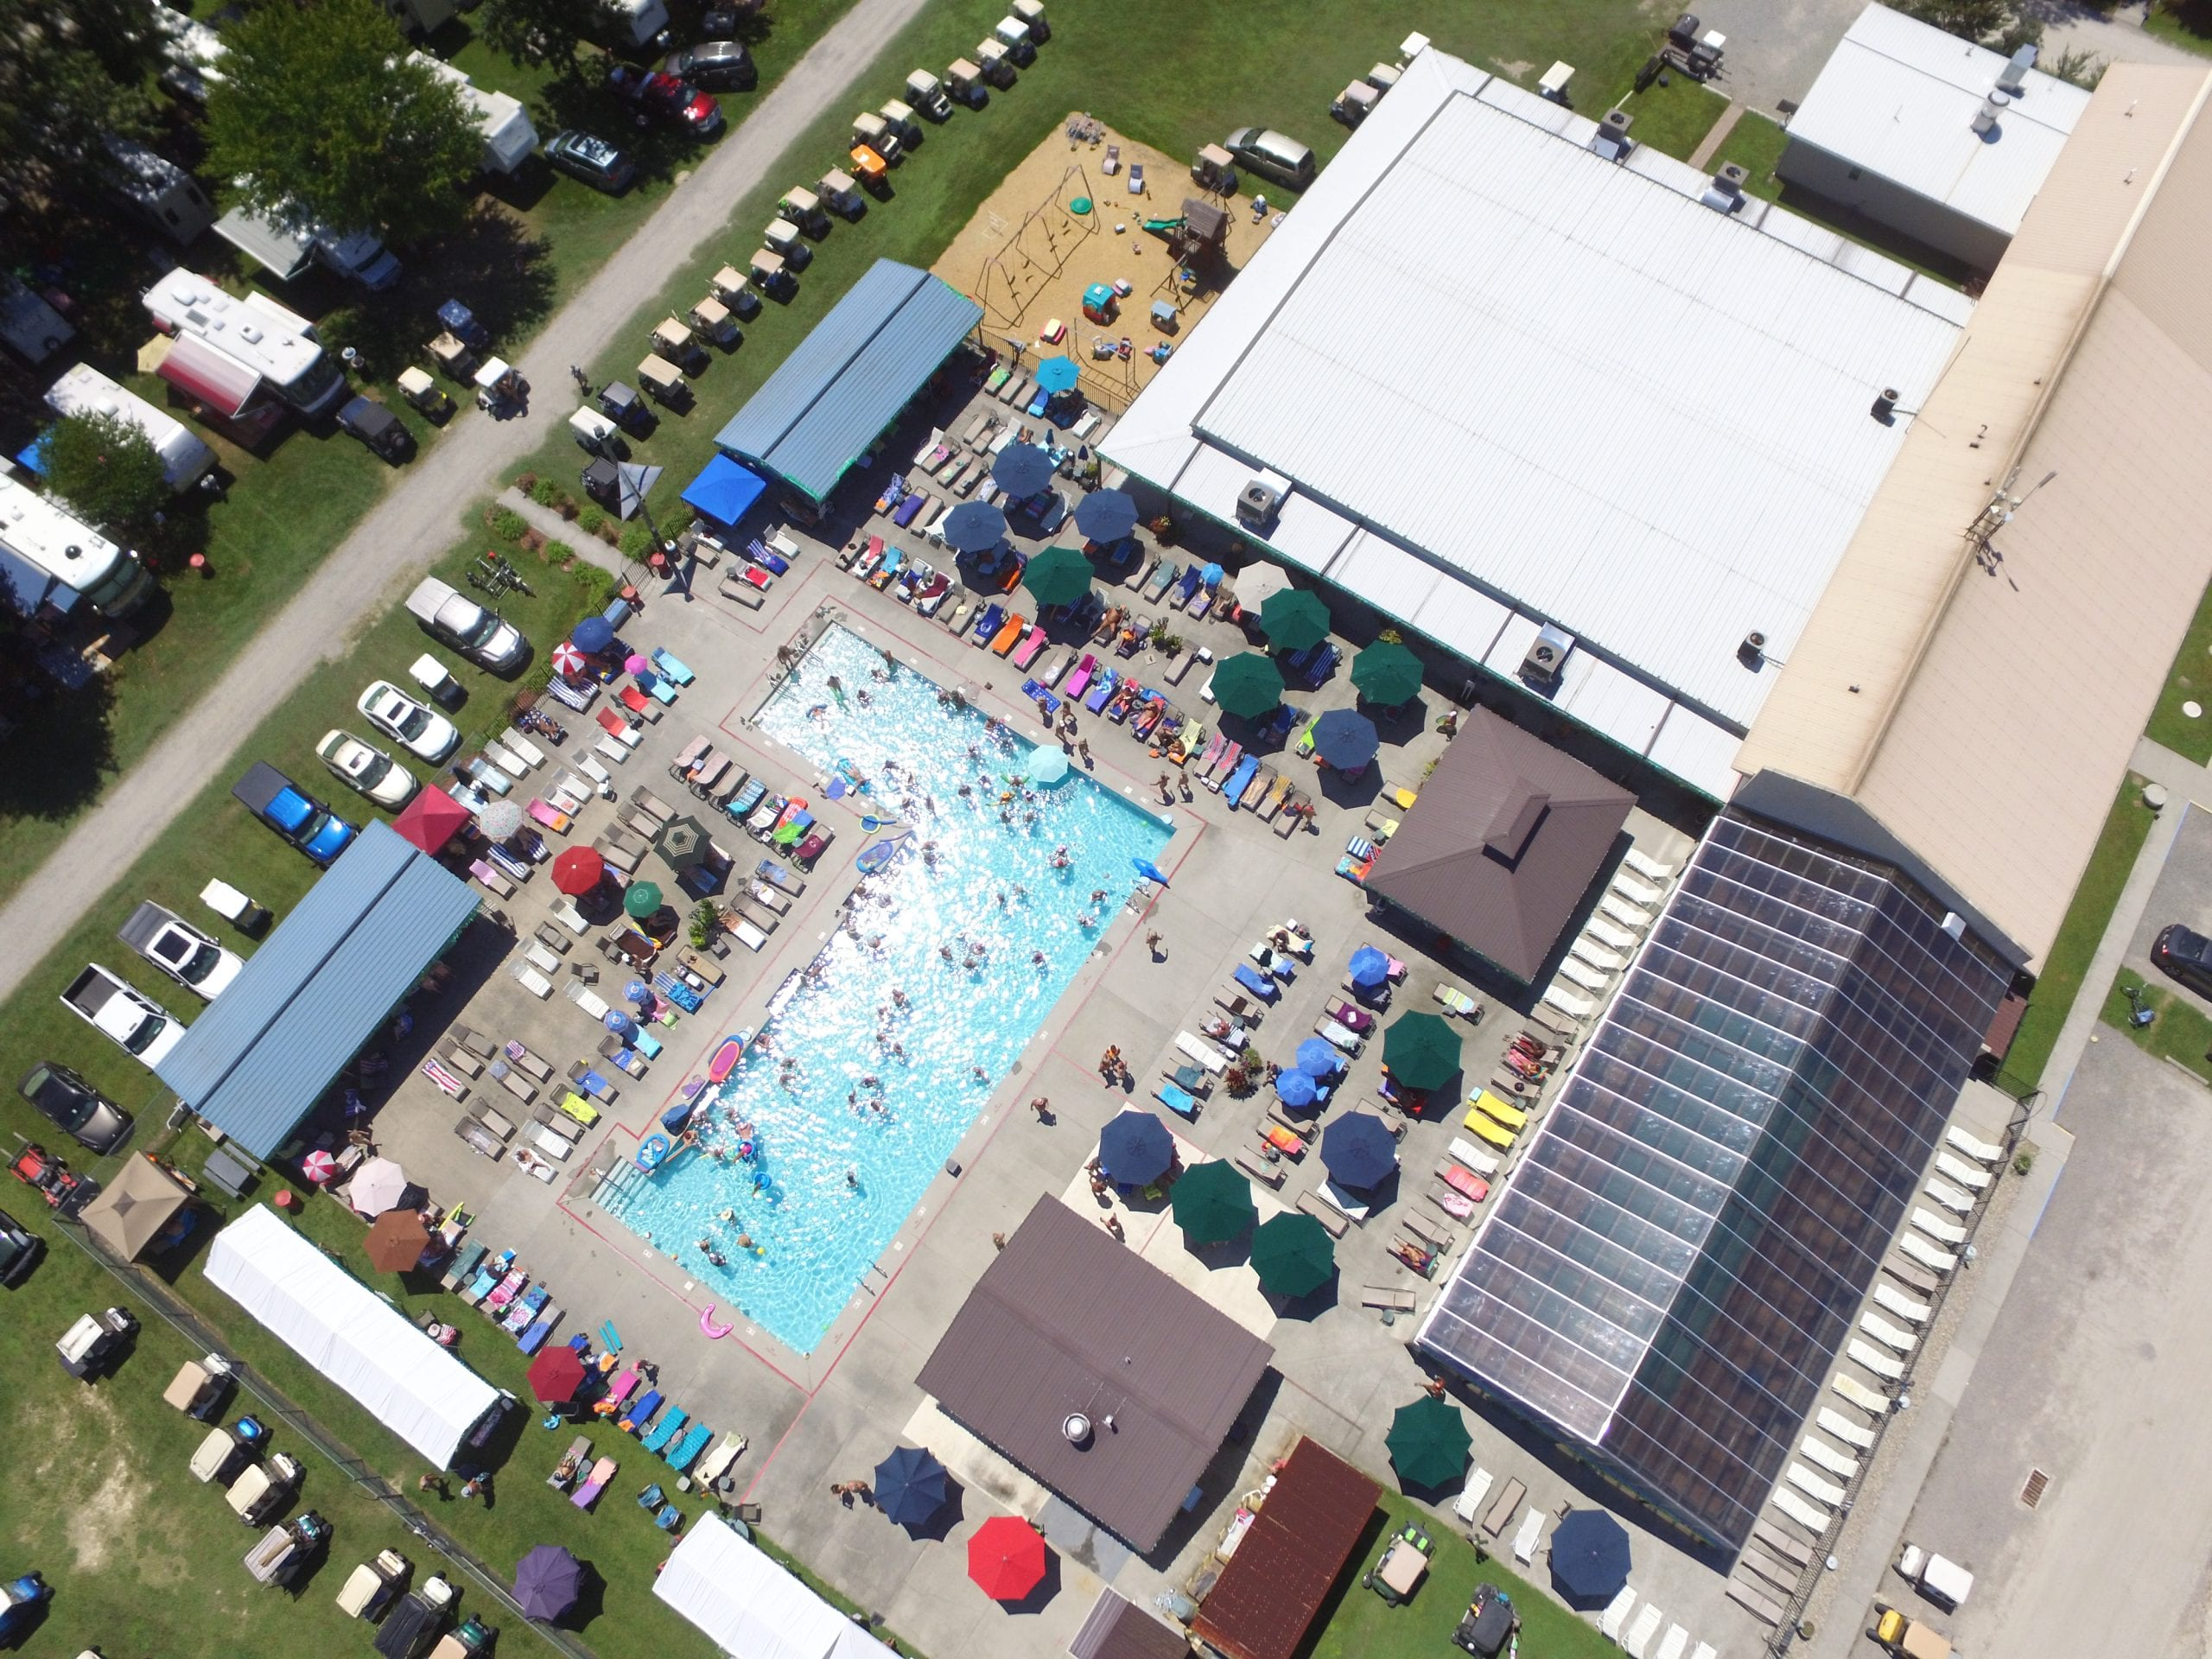 Skyview of Pool 1